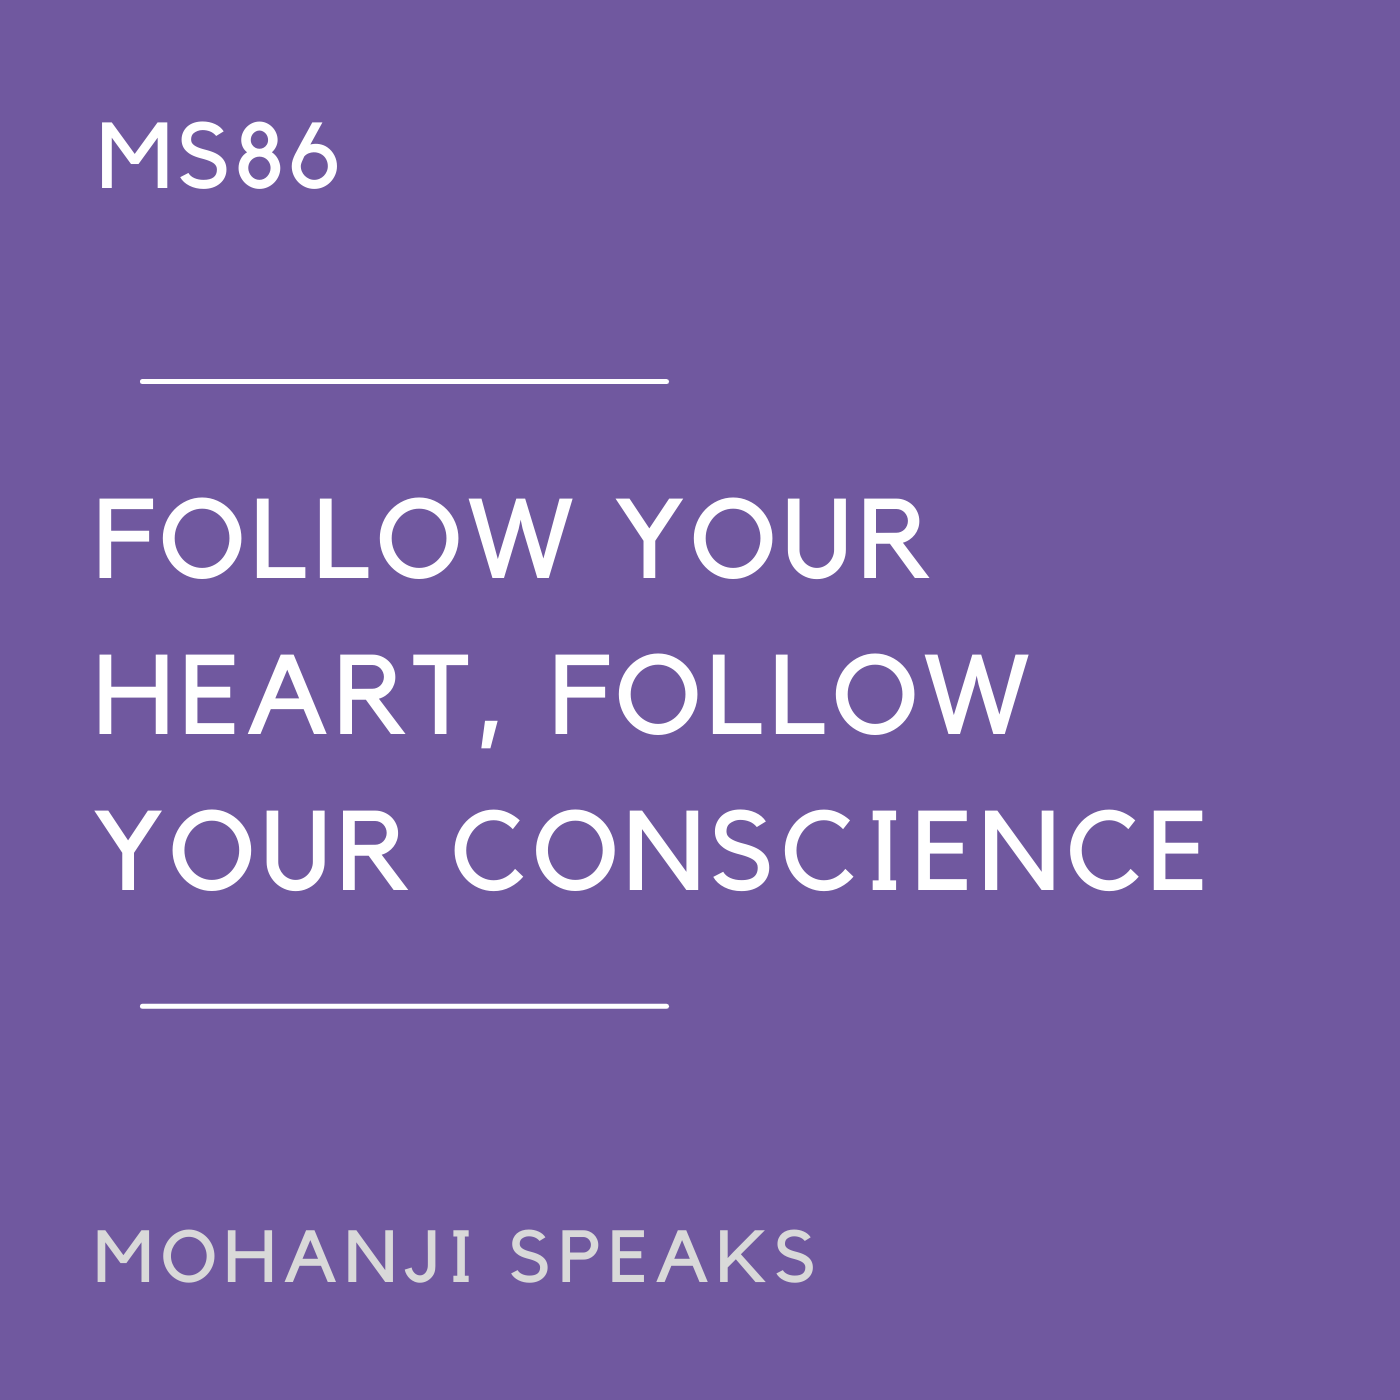 MS86 - Follow your Heart, Follow your Conscience